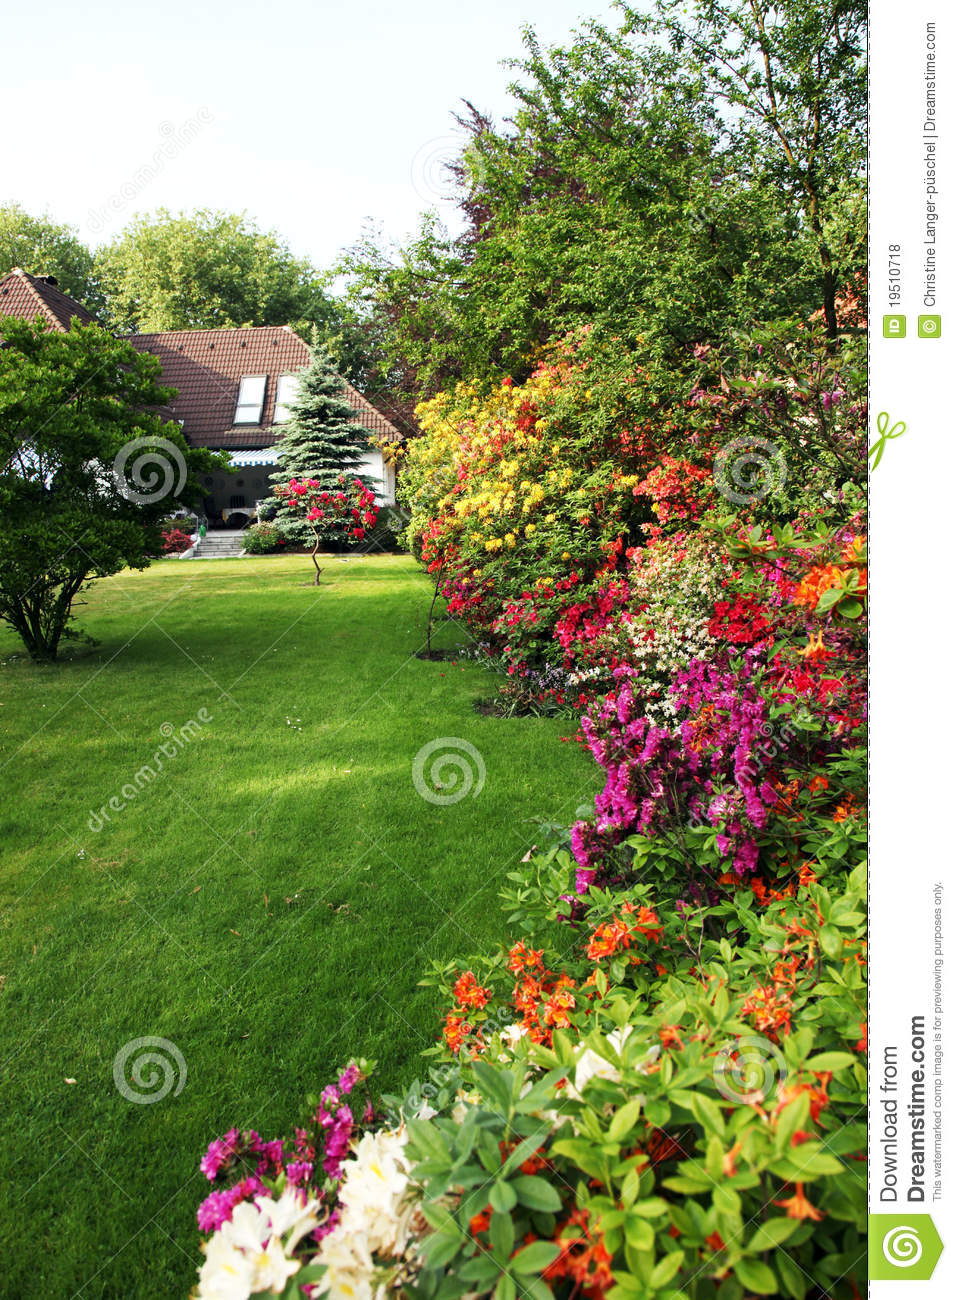 House with flower garden stock photo. Image of meadow , 19510718